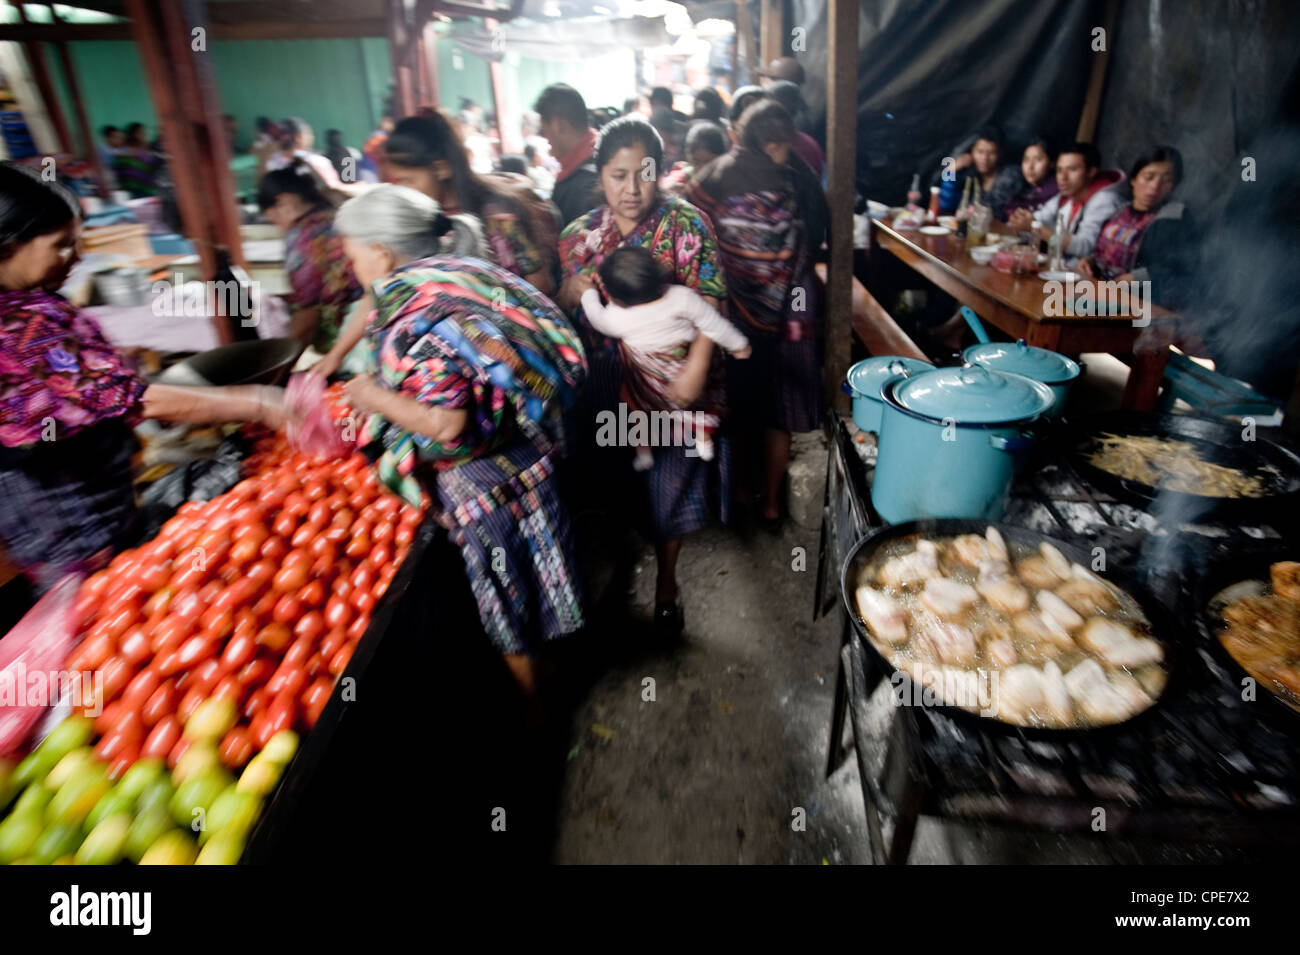 Food stalls in market, Chichicastenango, Western Highlands, Guatemala, Central America - Stock Image